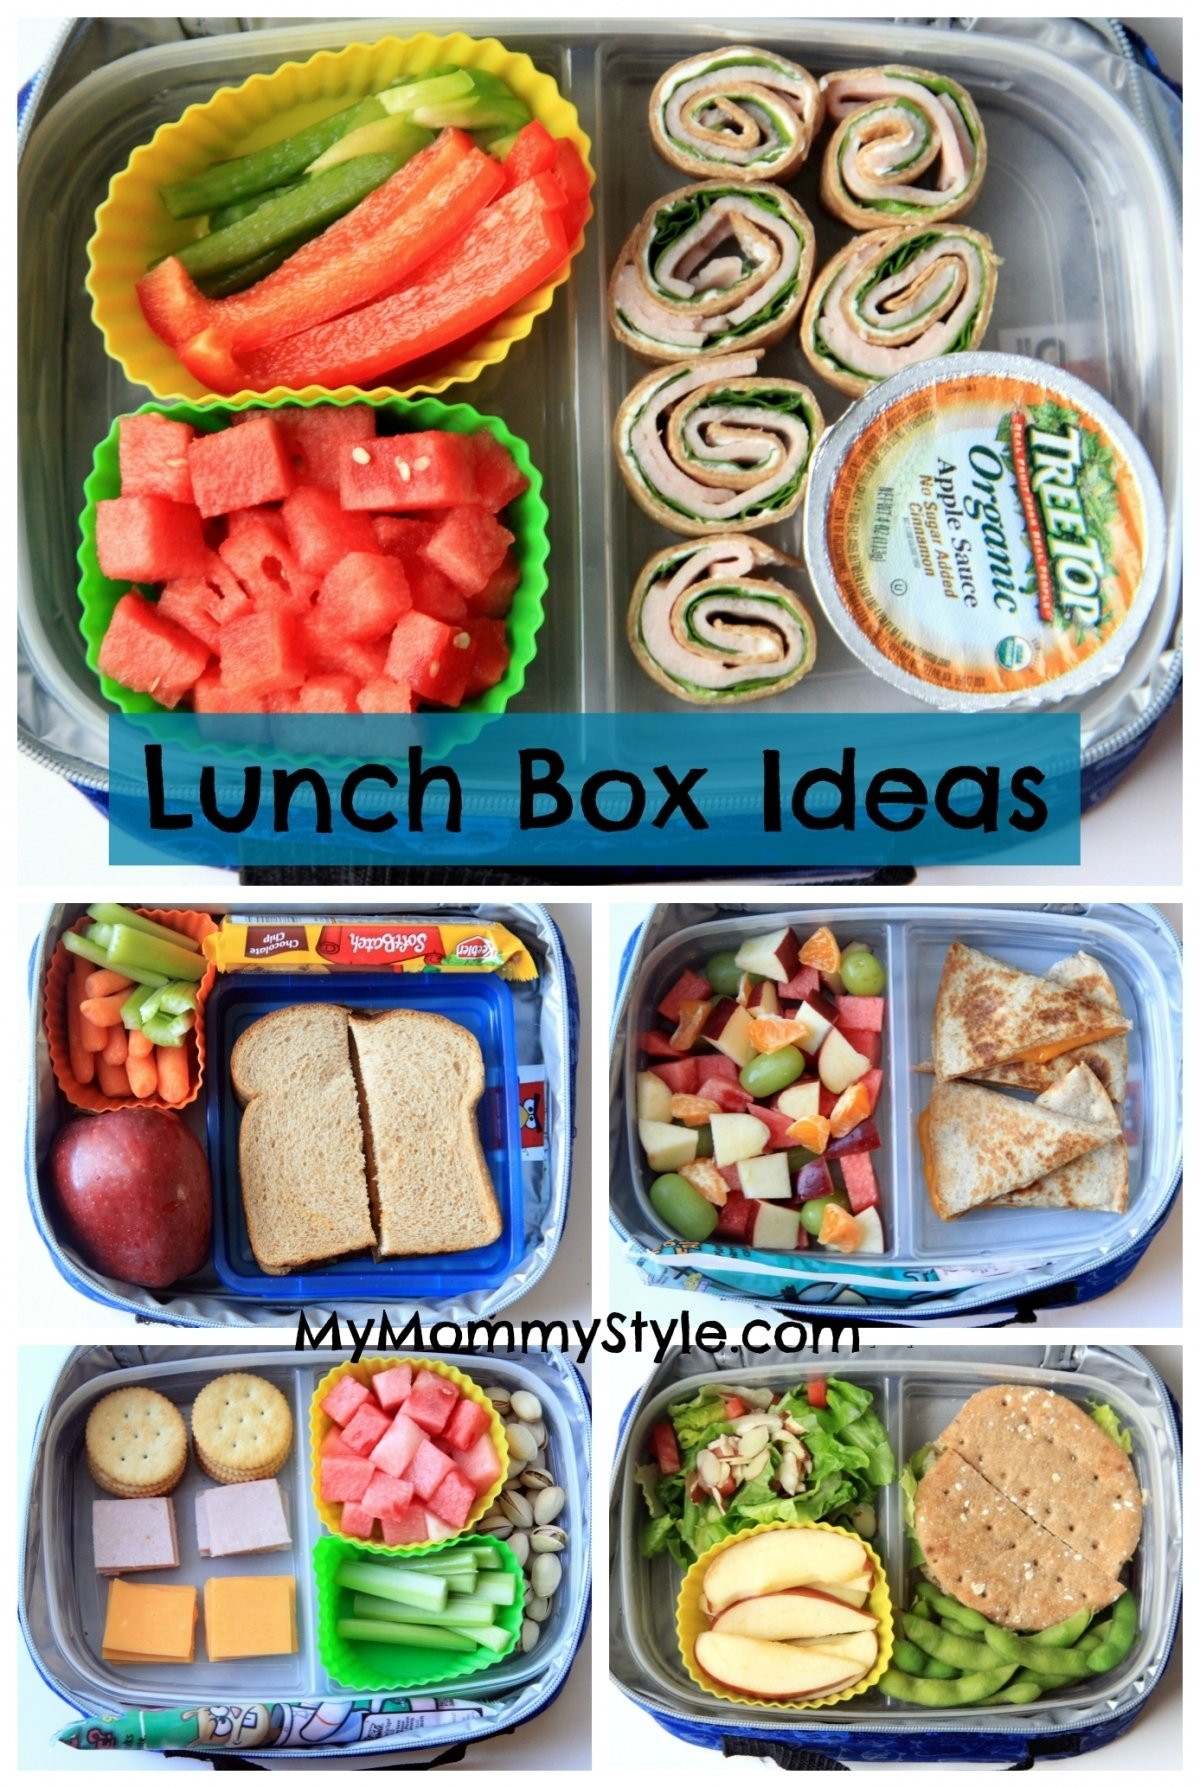 10 Pretty Healthy Lunchbox Ideas For Kids lunch box ideas kid lunches school lunch cold lunch ideas healthy 6 2020